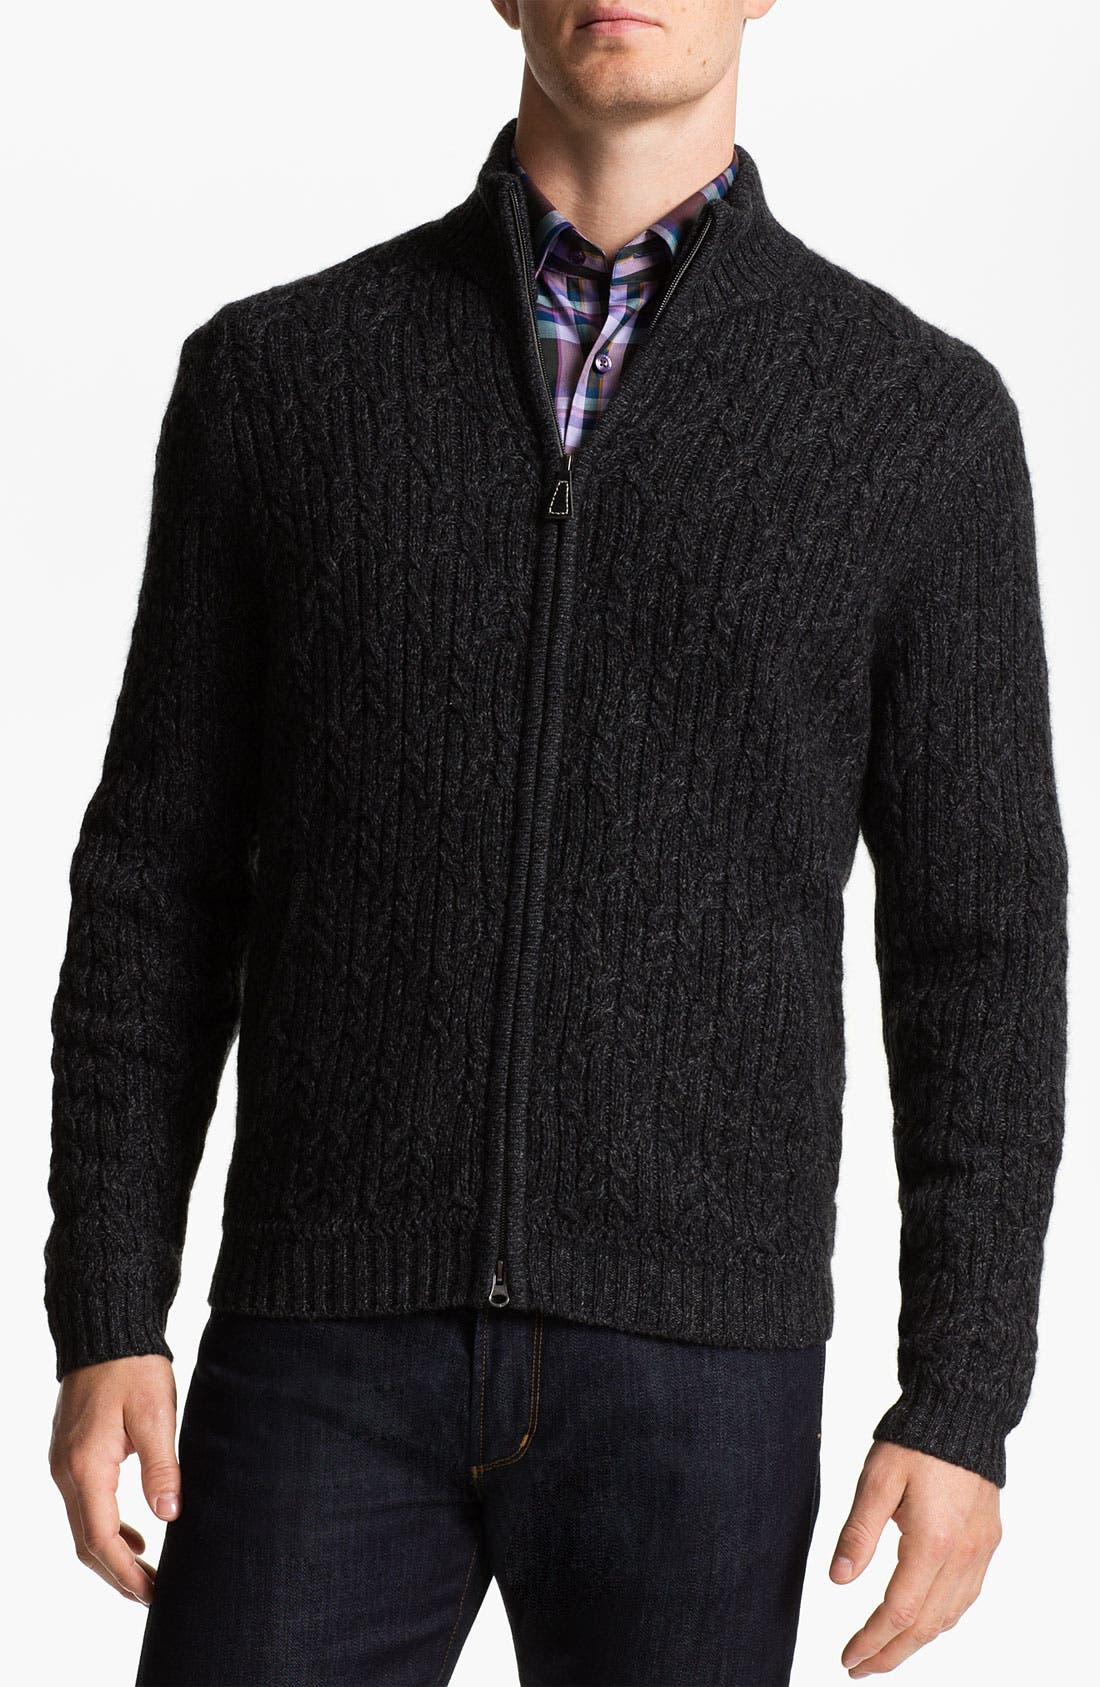 Alternate Image 1 Selected - John W. Nordstrom® Cable Knit Cashmere Cardigan